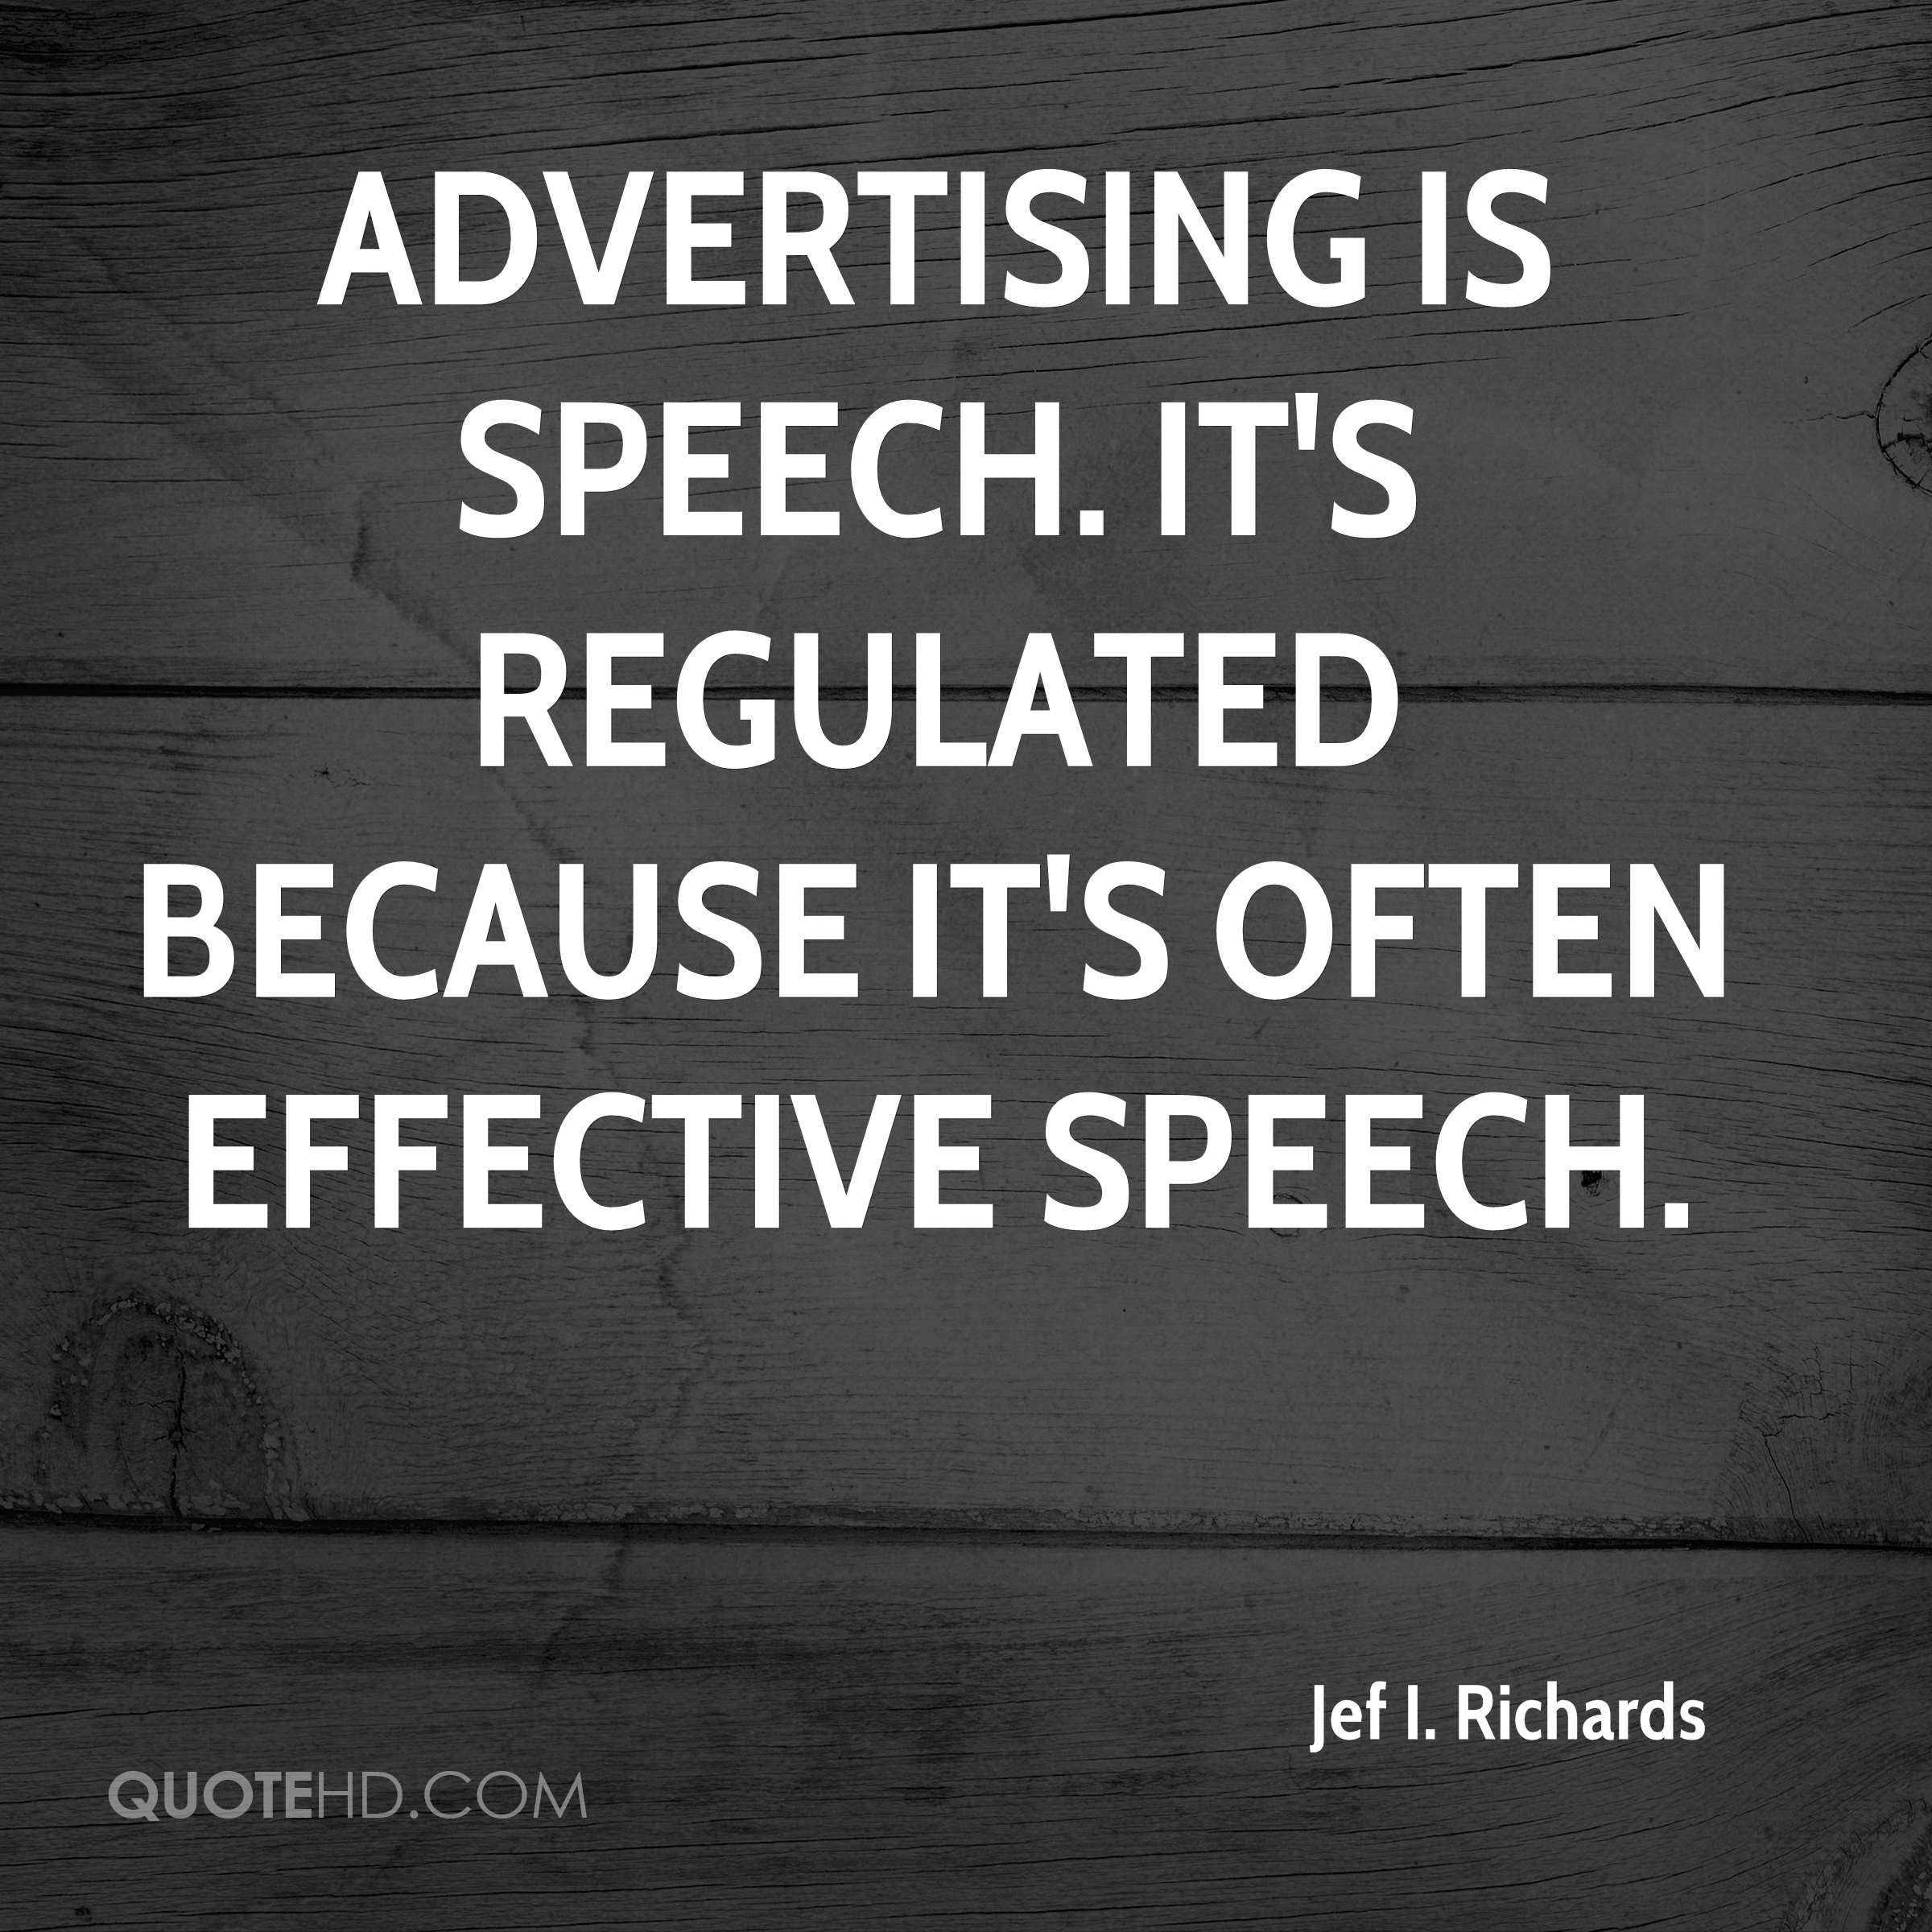 Advertising is speech. It's regulated because it's often effective speech.